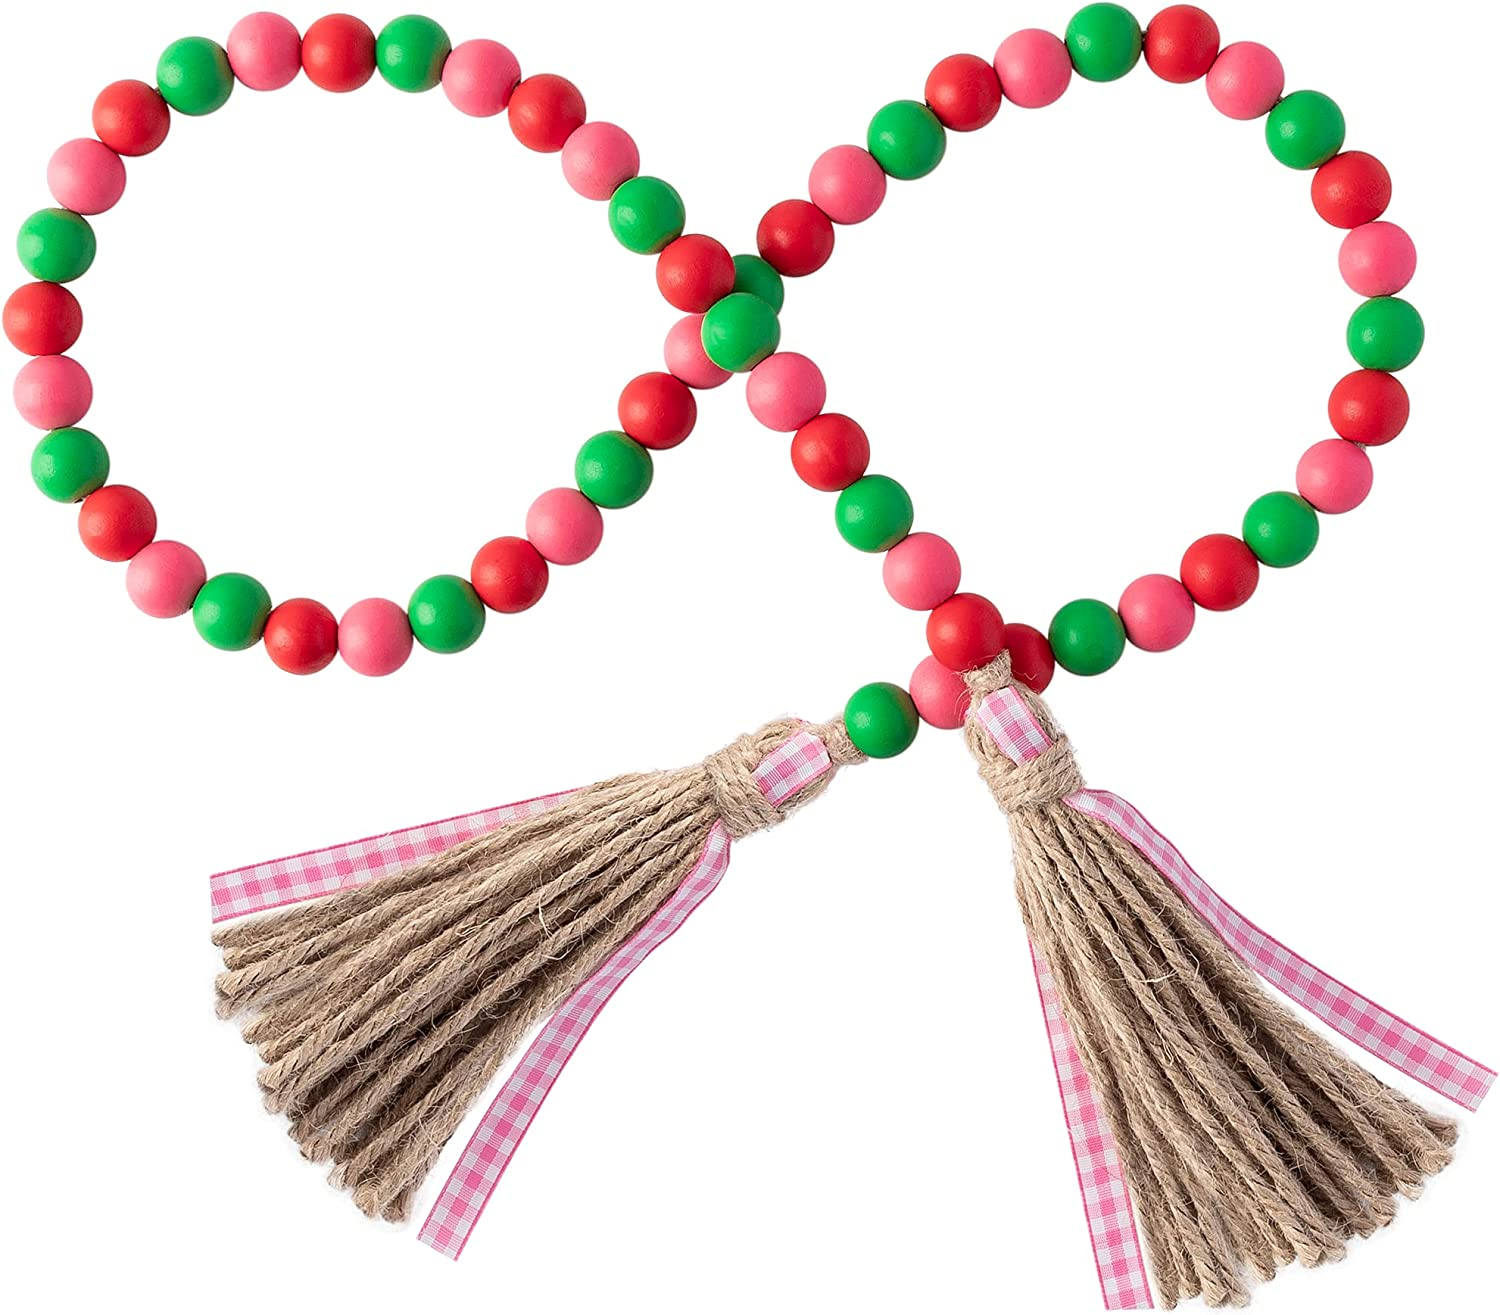 Flamingo Theme Wood Bead Garland with Tassel Green Pink Red Wood Garland Summer Rustic Farmhouse Tiered Tray Decorations Country Rustic Wall Hanging Decor Natural Wood Bead Decoration for 2021 Summer